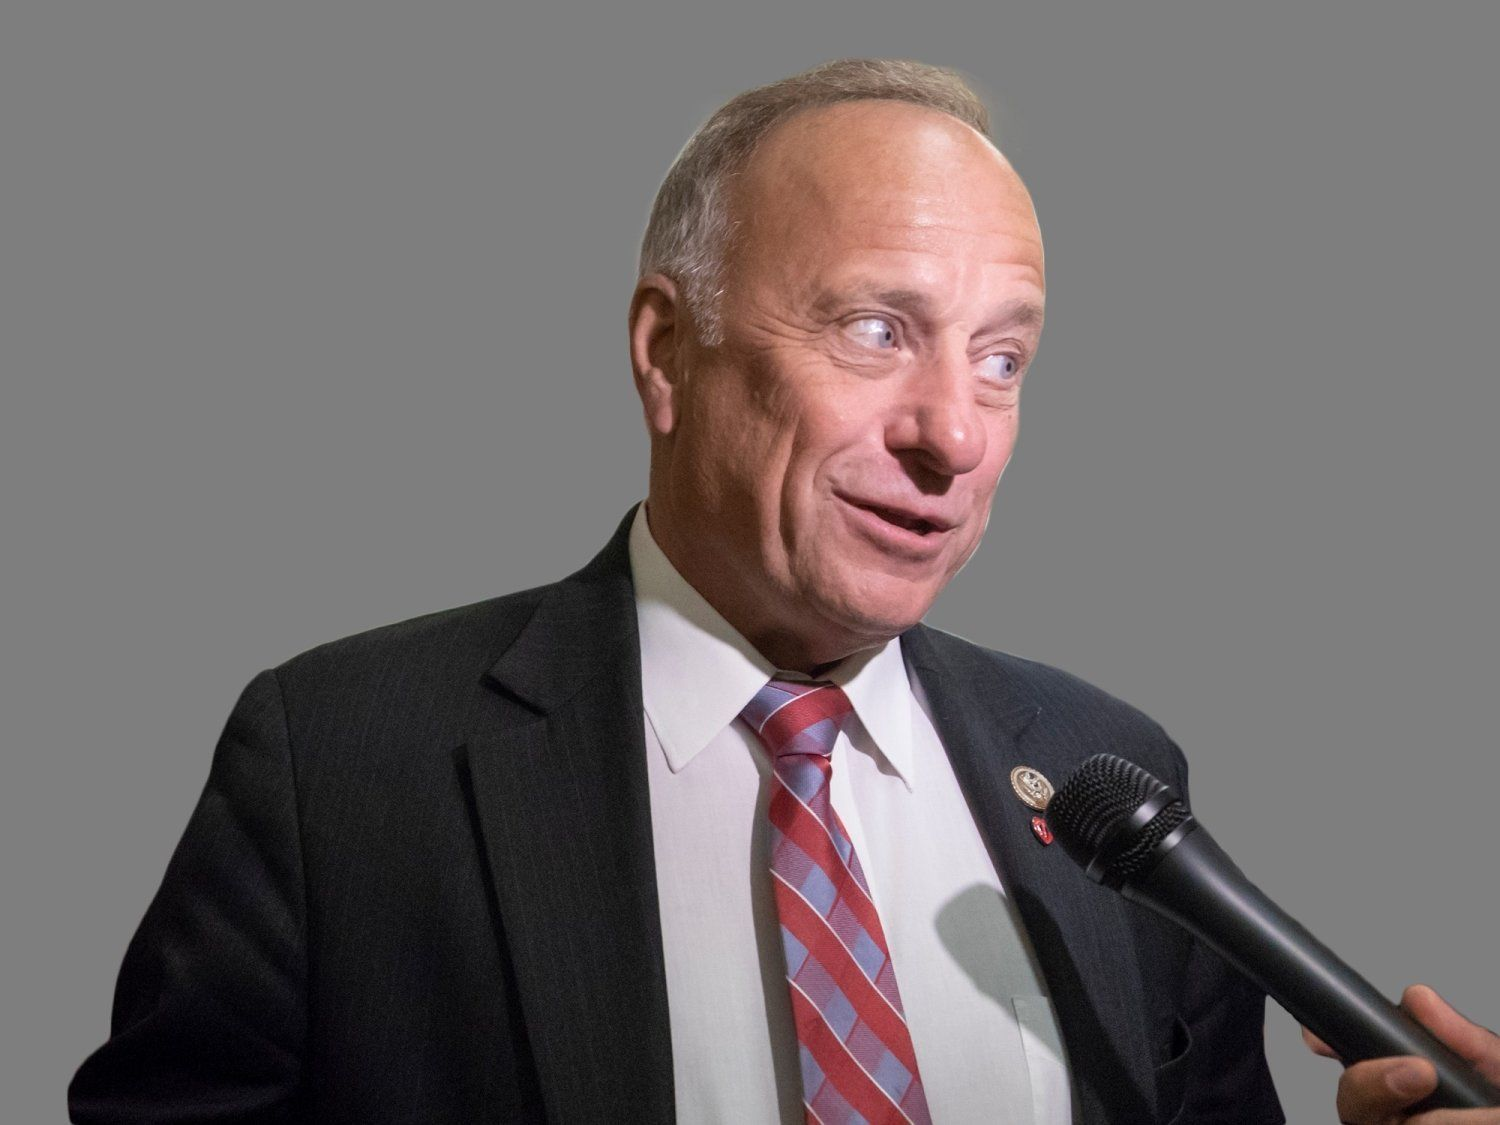 Steve King headshot, as US Representative of Iowa, graphic element on gray